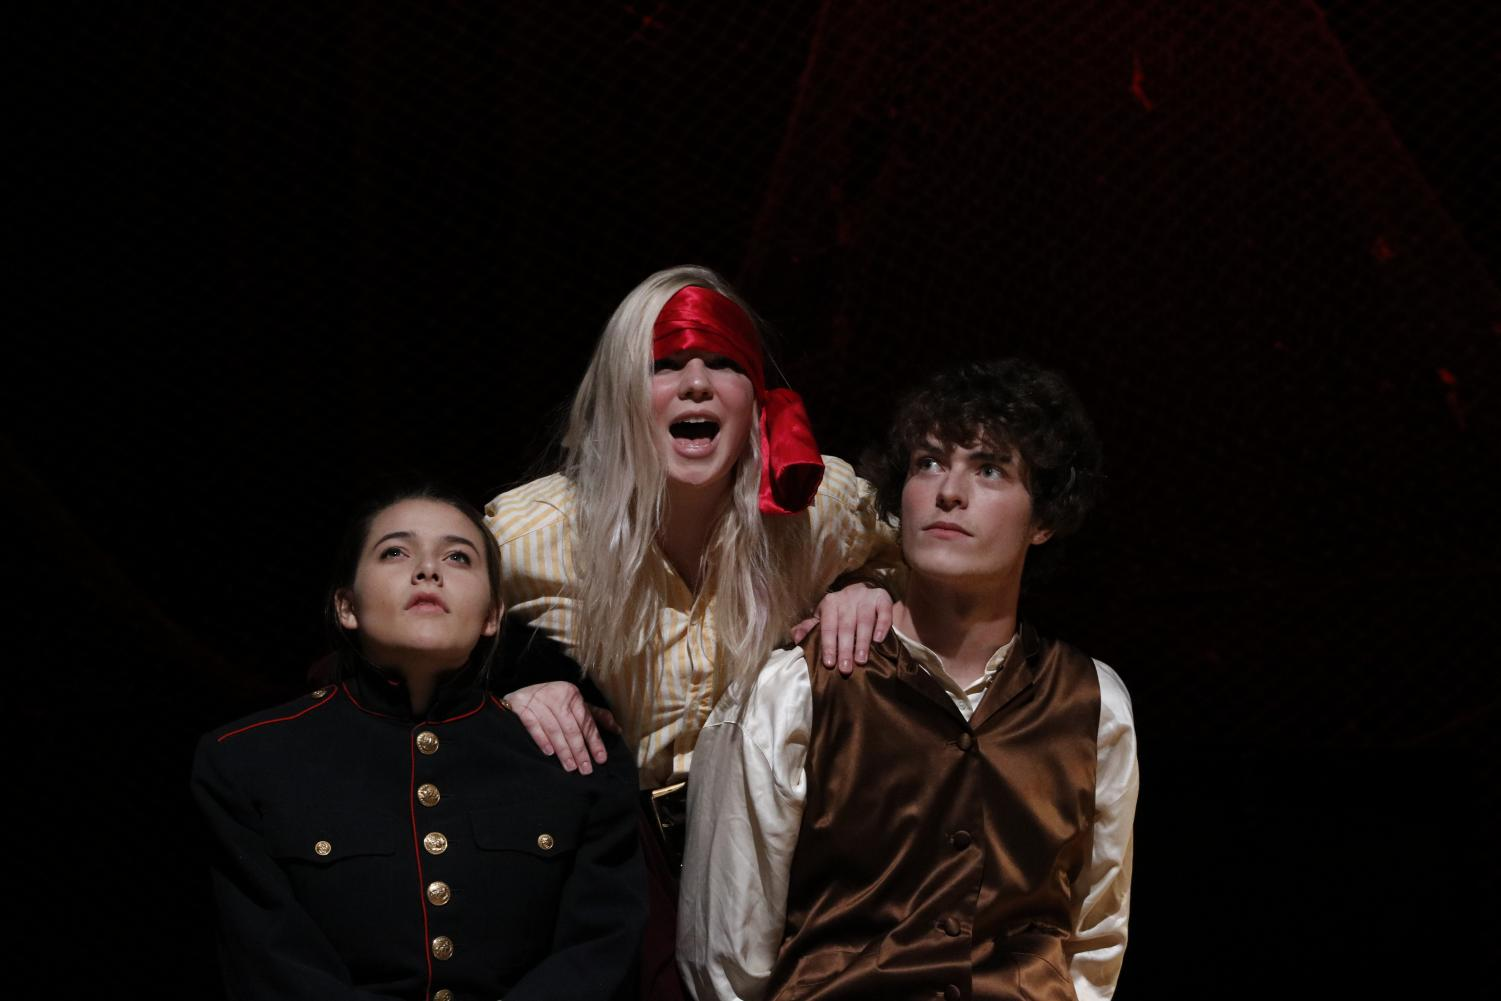 Beebe (middle) acts alongside Ellie Olsen, 12, and Ethan Lahm, 12, in the fall play Peter and the Starcatcher.